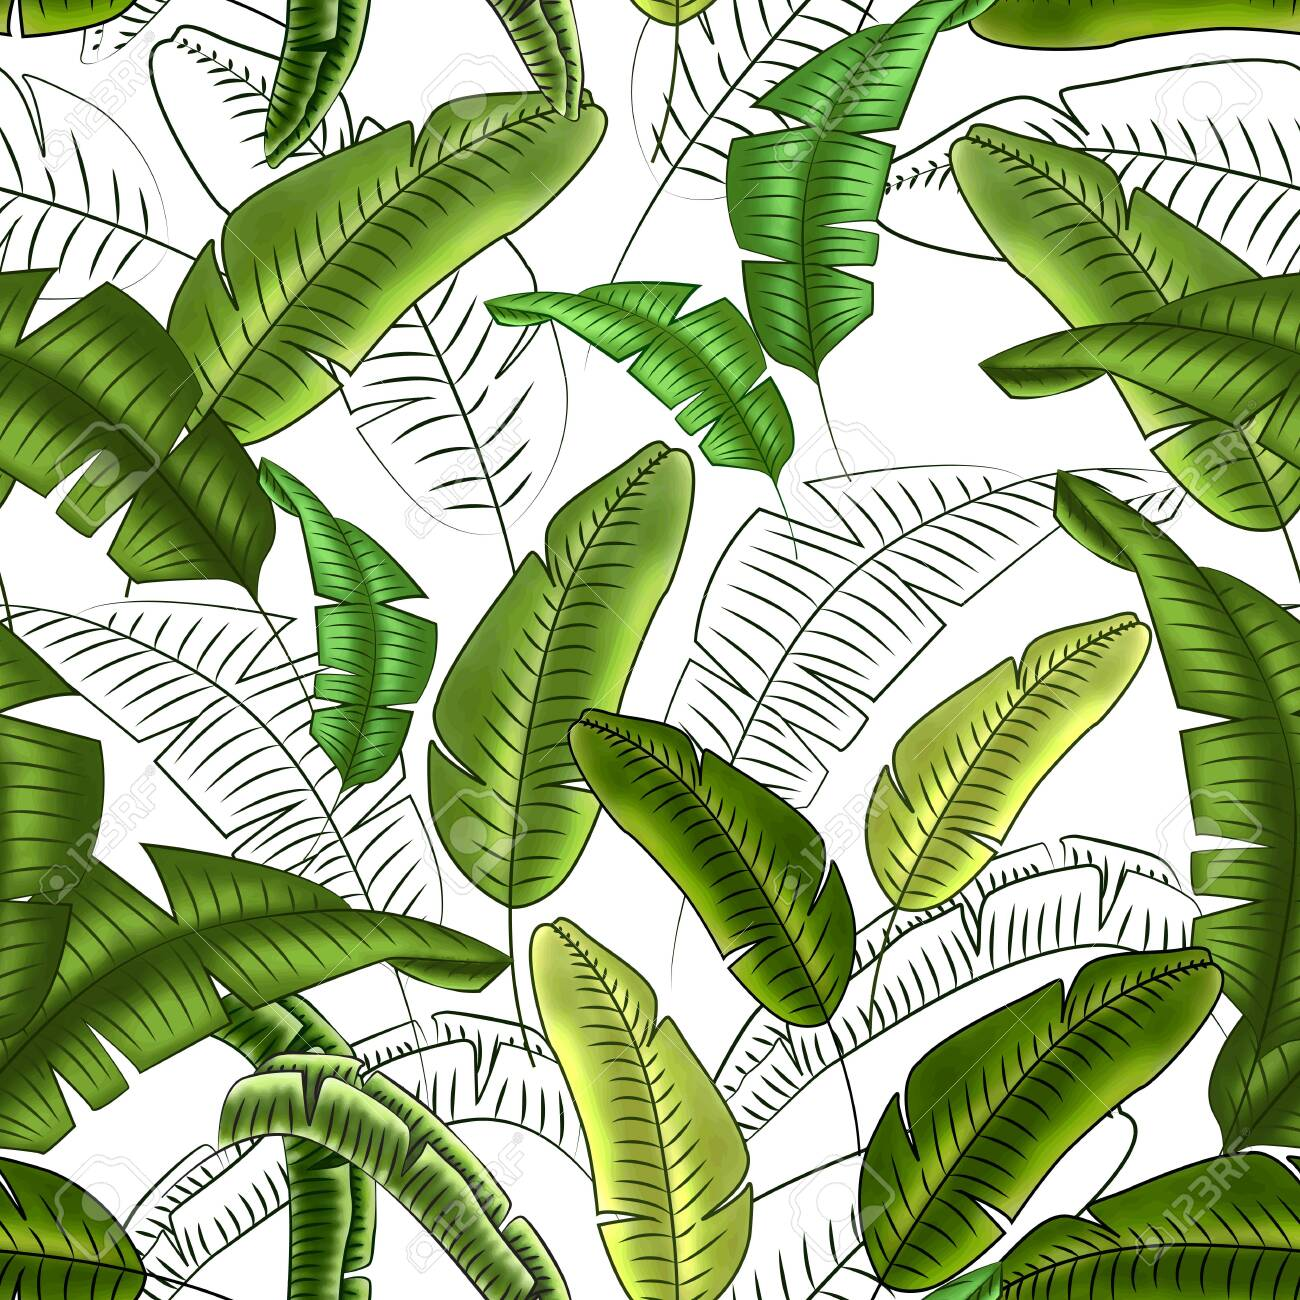 Seamless floral pattern of tropical banana leaves, shades of green, white background. Great for decorating fabrics, textiles, gift wrapping, printed matter, interiors, advertising. - 149669434